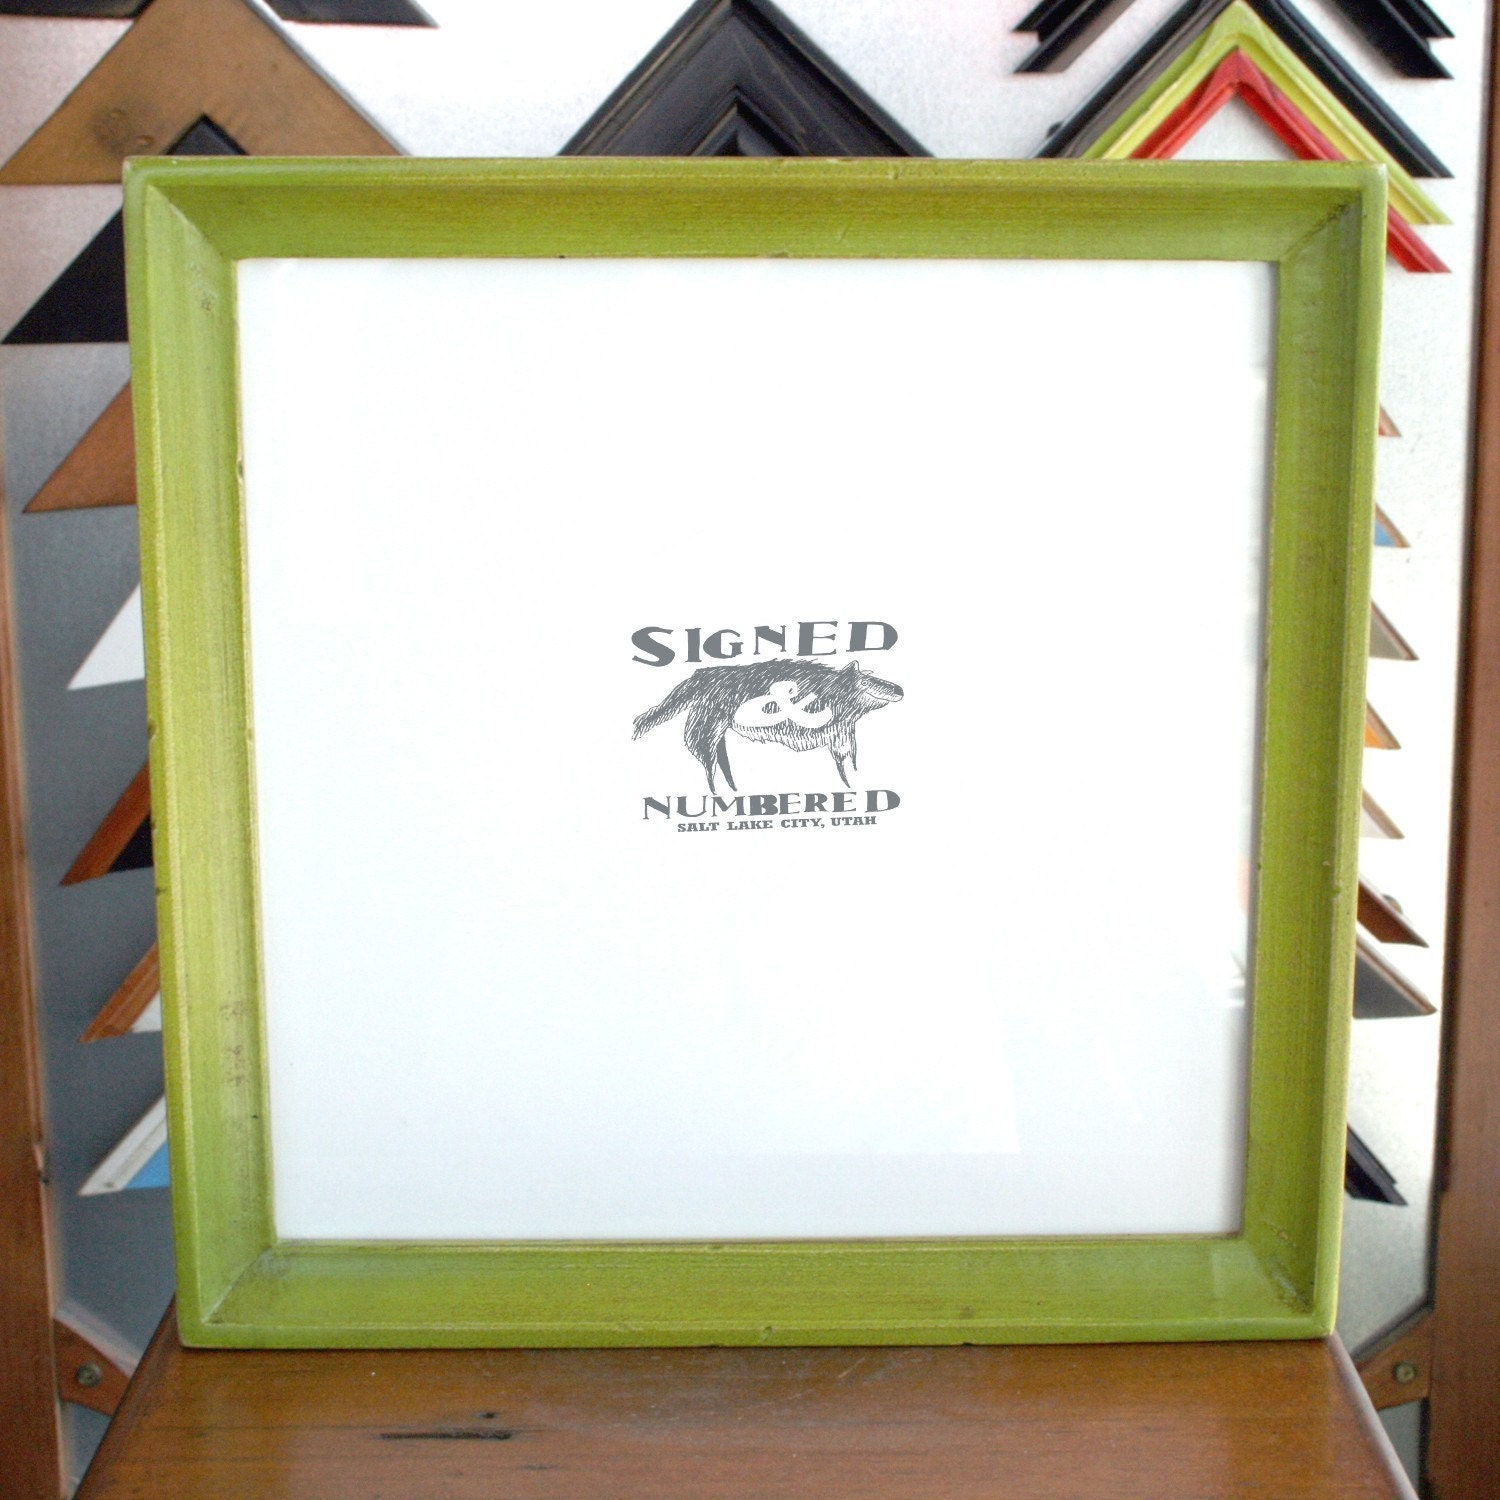 10x10 square picture frame